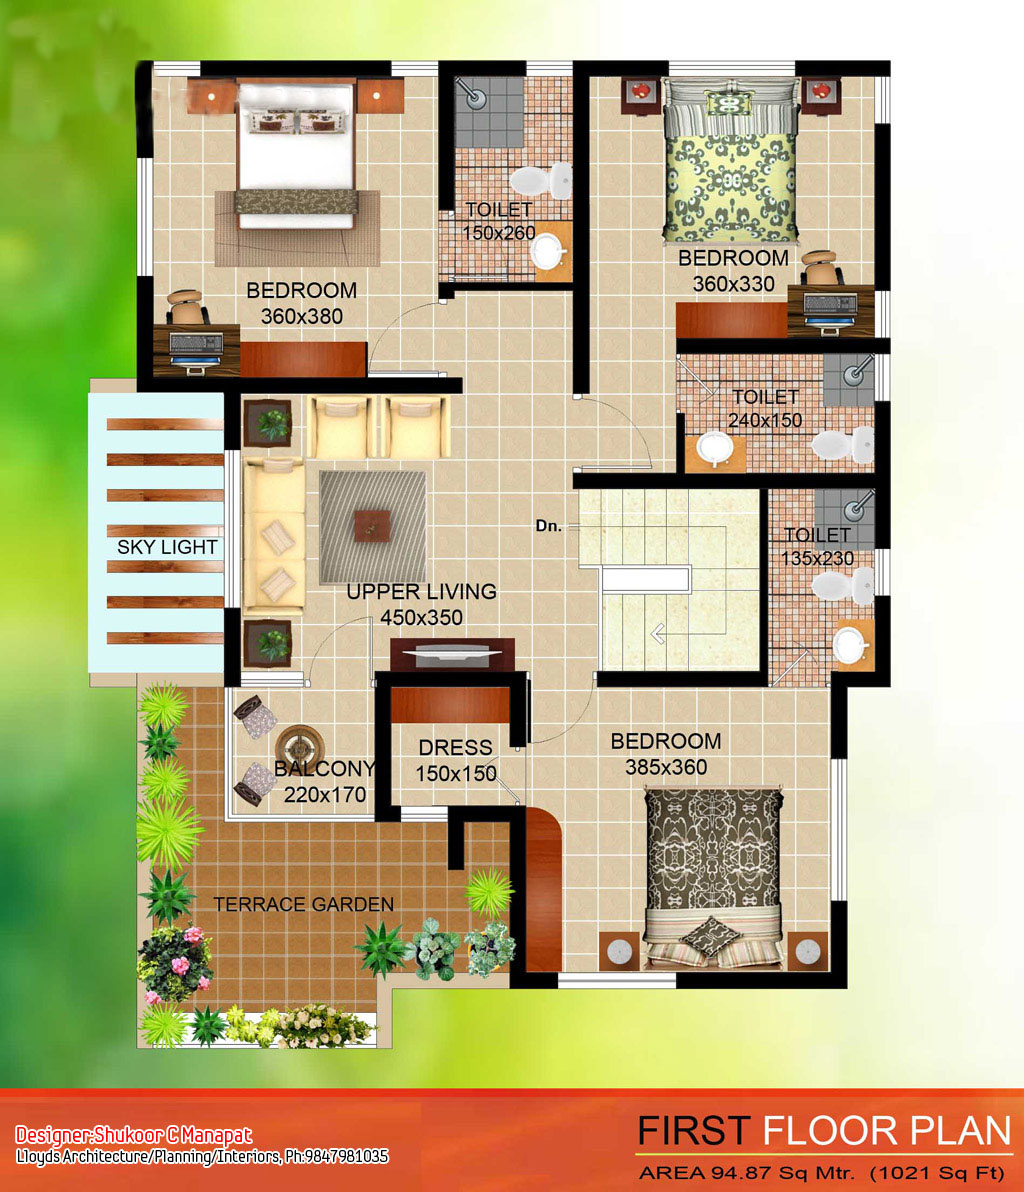 Lovely Home Plans In Kerala Below 5 Lakhs Room 4 Bedroom House Floor Plan L in Kerala House Design With Floor Plans